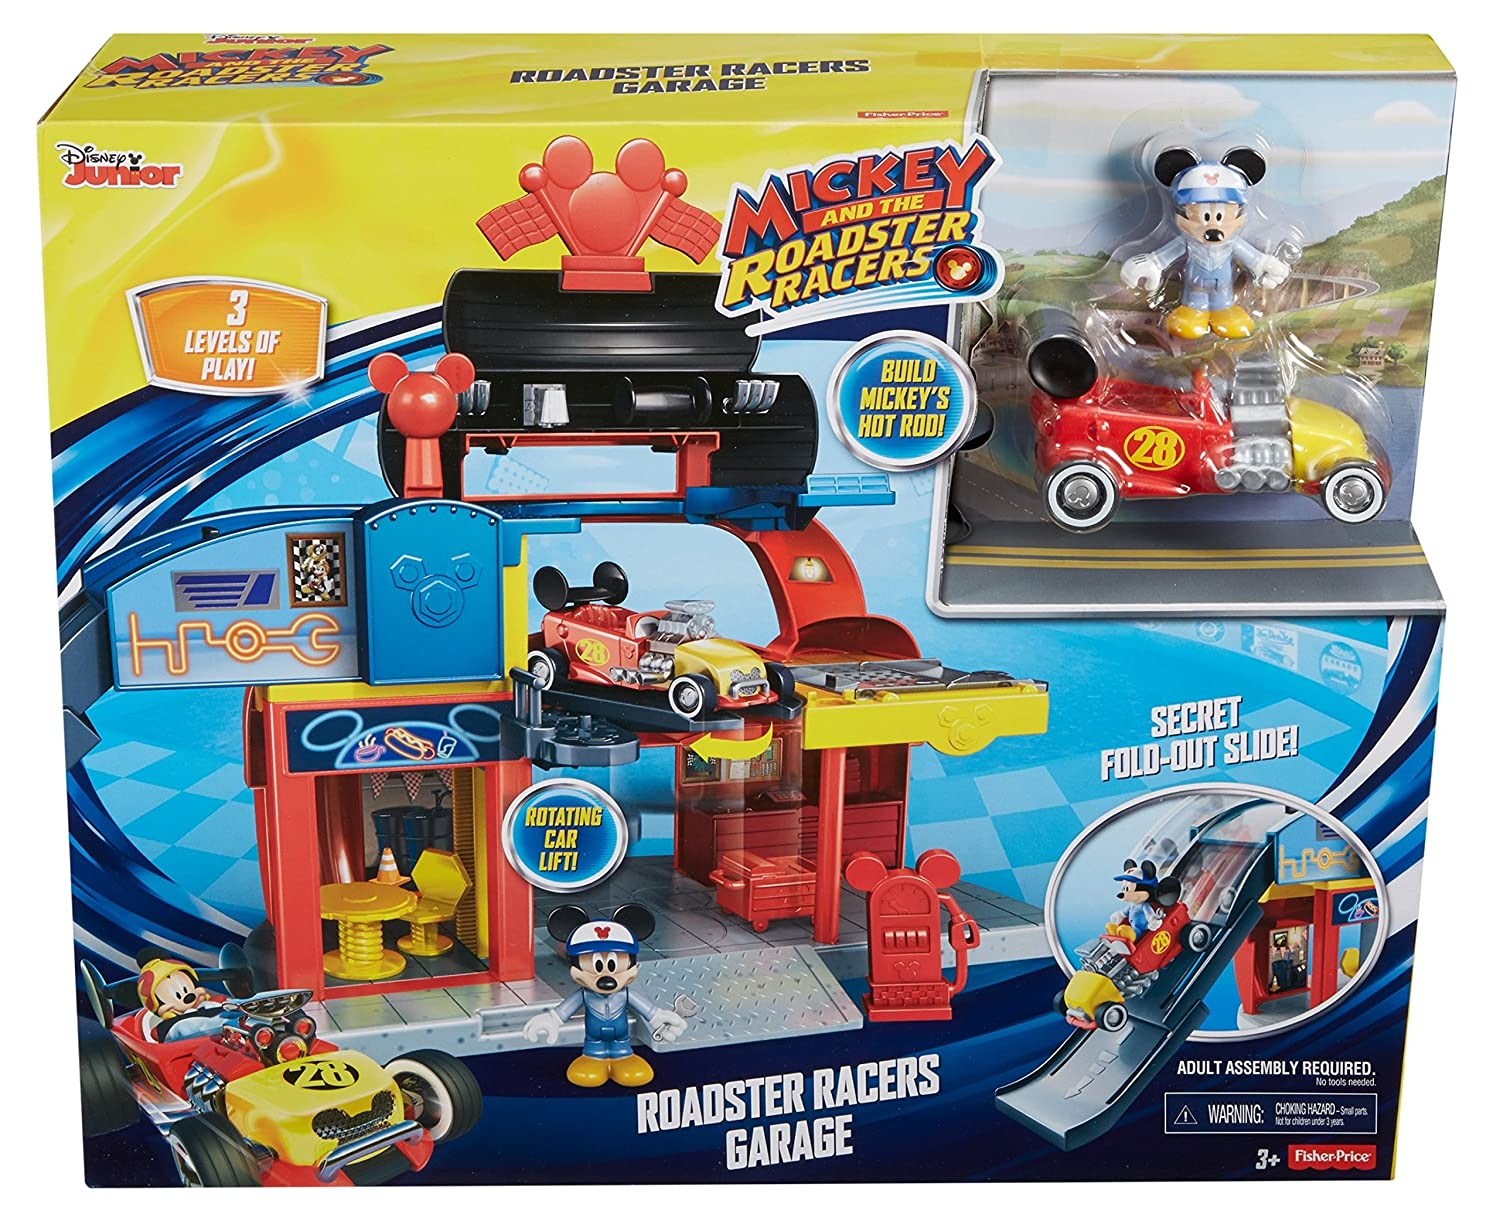 Fisher Price Disney Mickey The Roadster Racers Roadster Racers Garage Playset